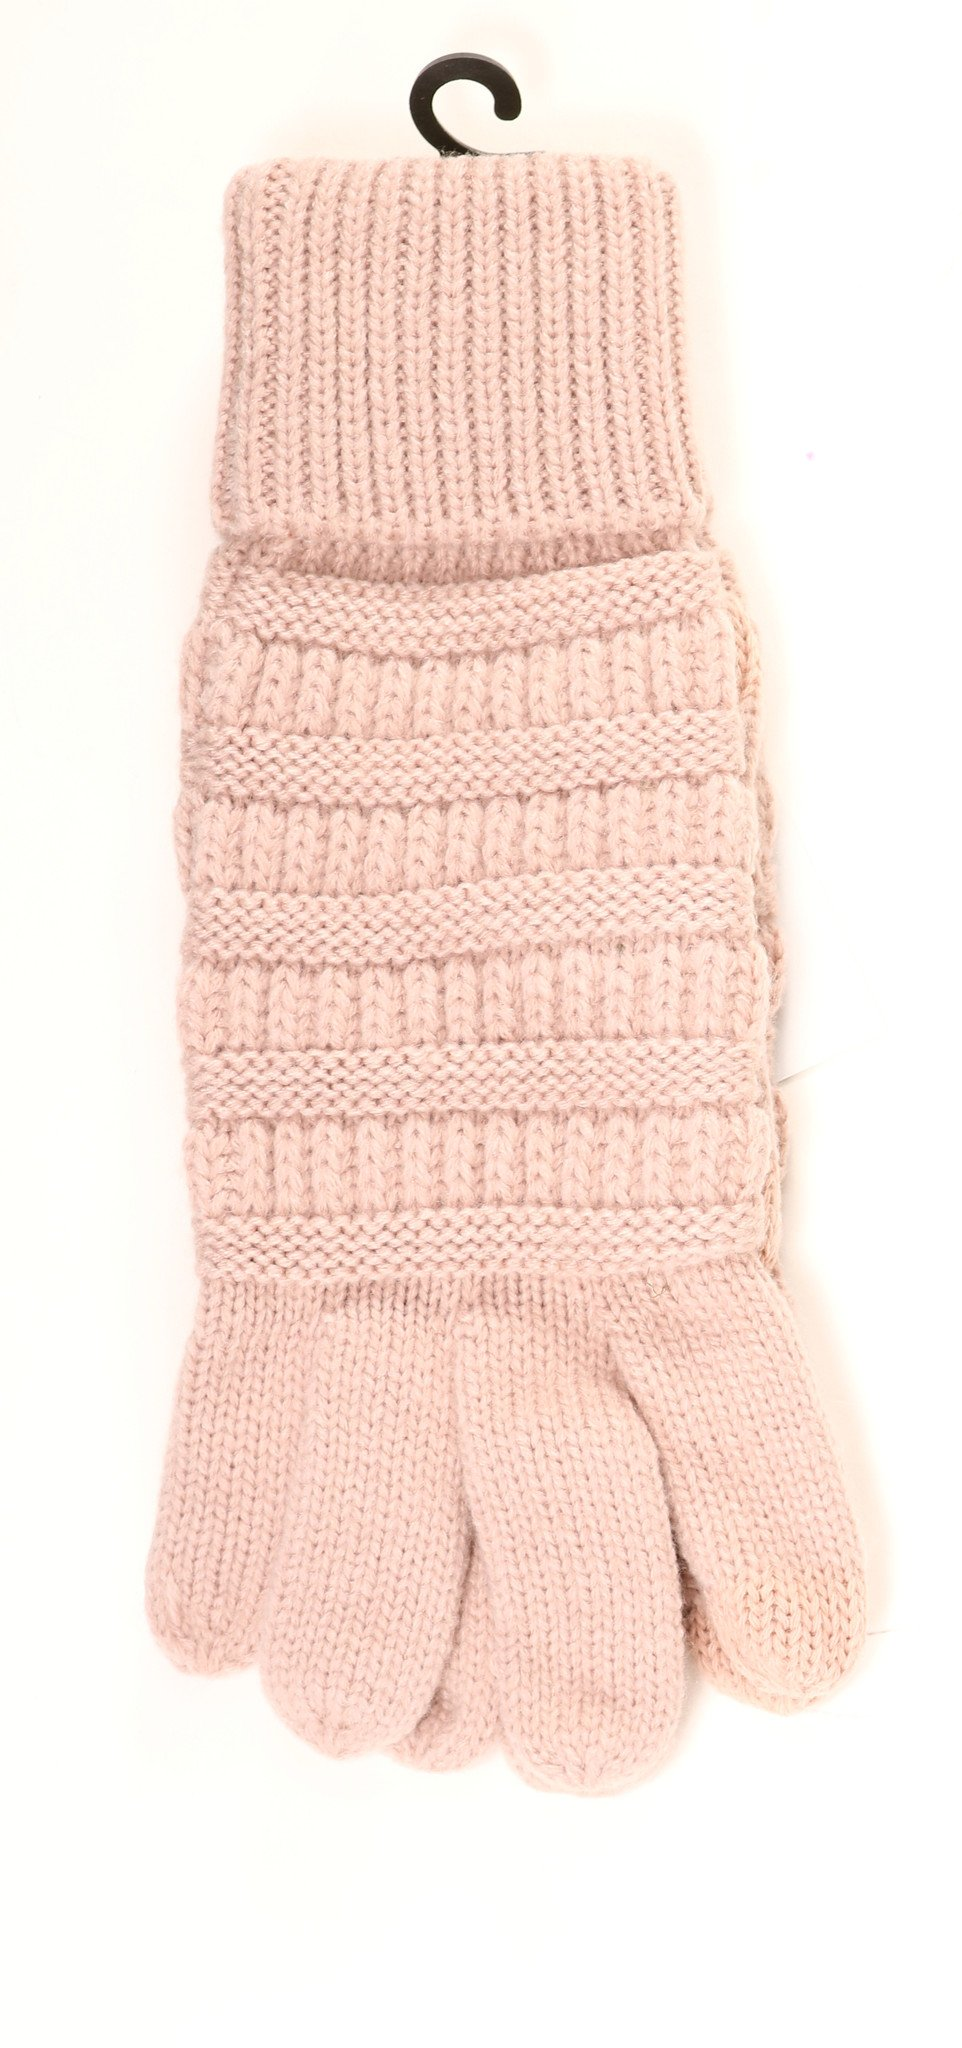 C.C. Solid Cable Knit Gloves